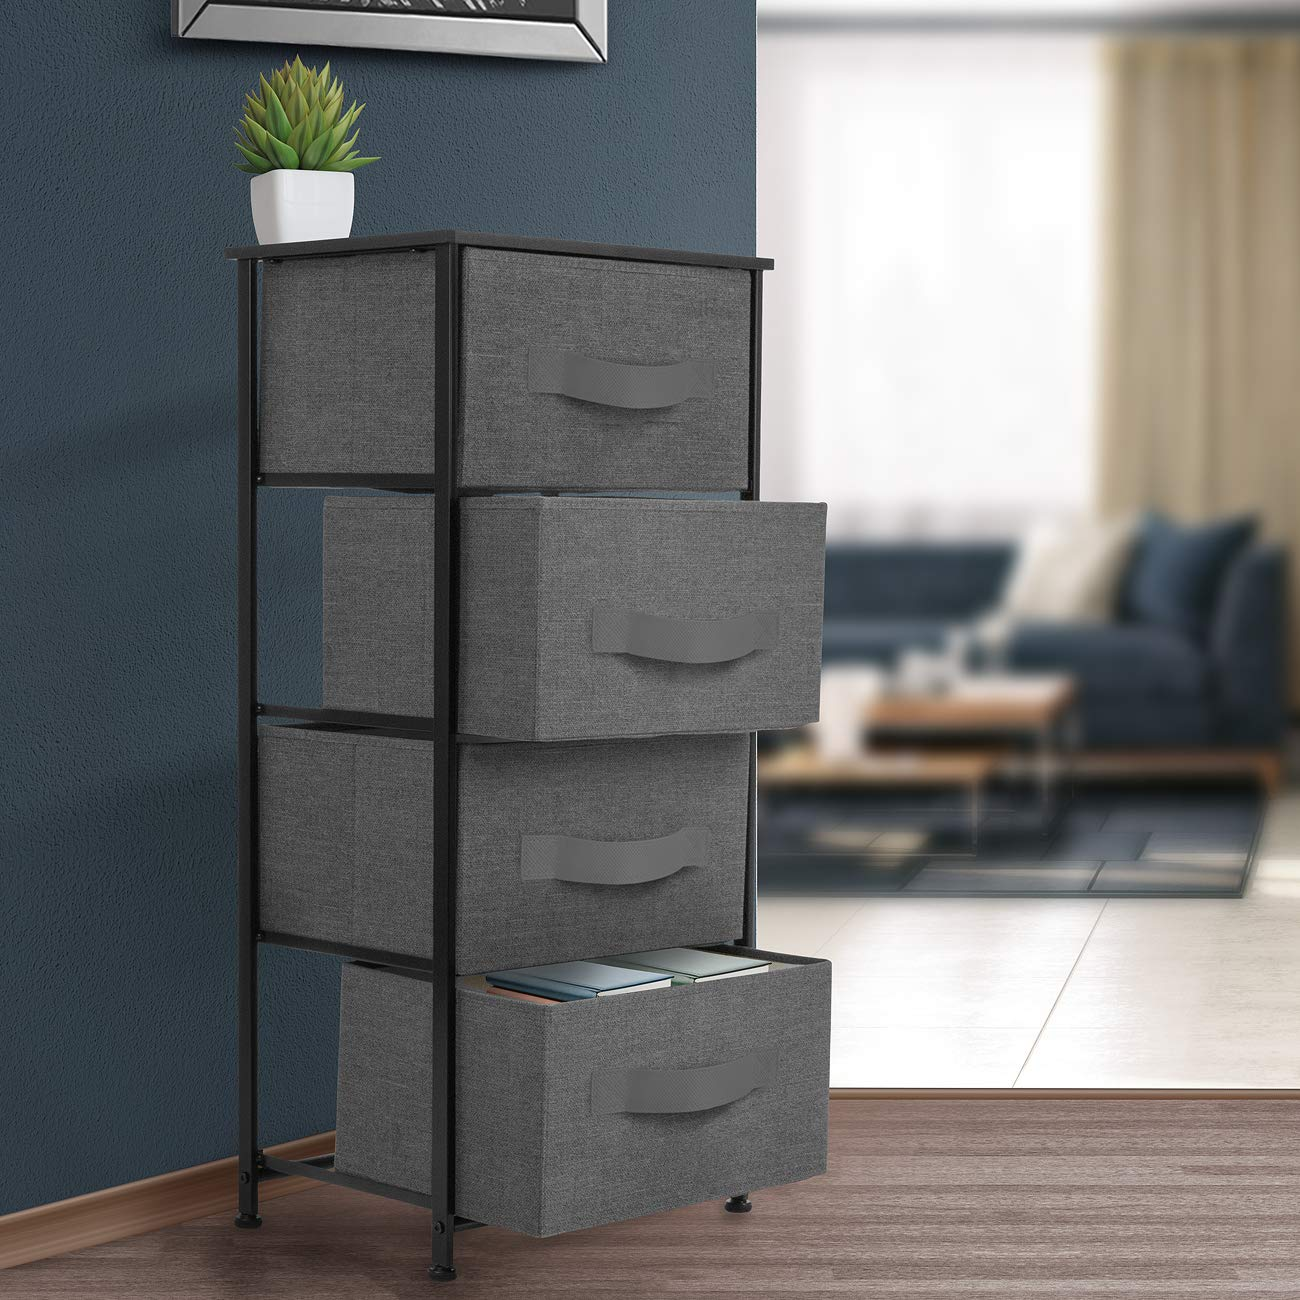 Sorbus Nightstand Chest with 4 Drawers – Bedside Furniture End Table Dresser for Clothing, Bedroom Accessories, Office, College Dorm, Steel Frame, Wood Top, Easy Pull Fabric Bins Black Charcoal